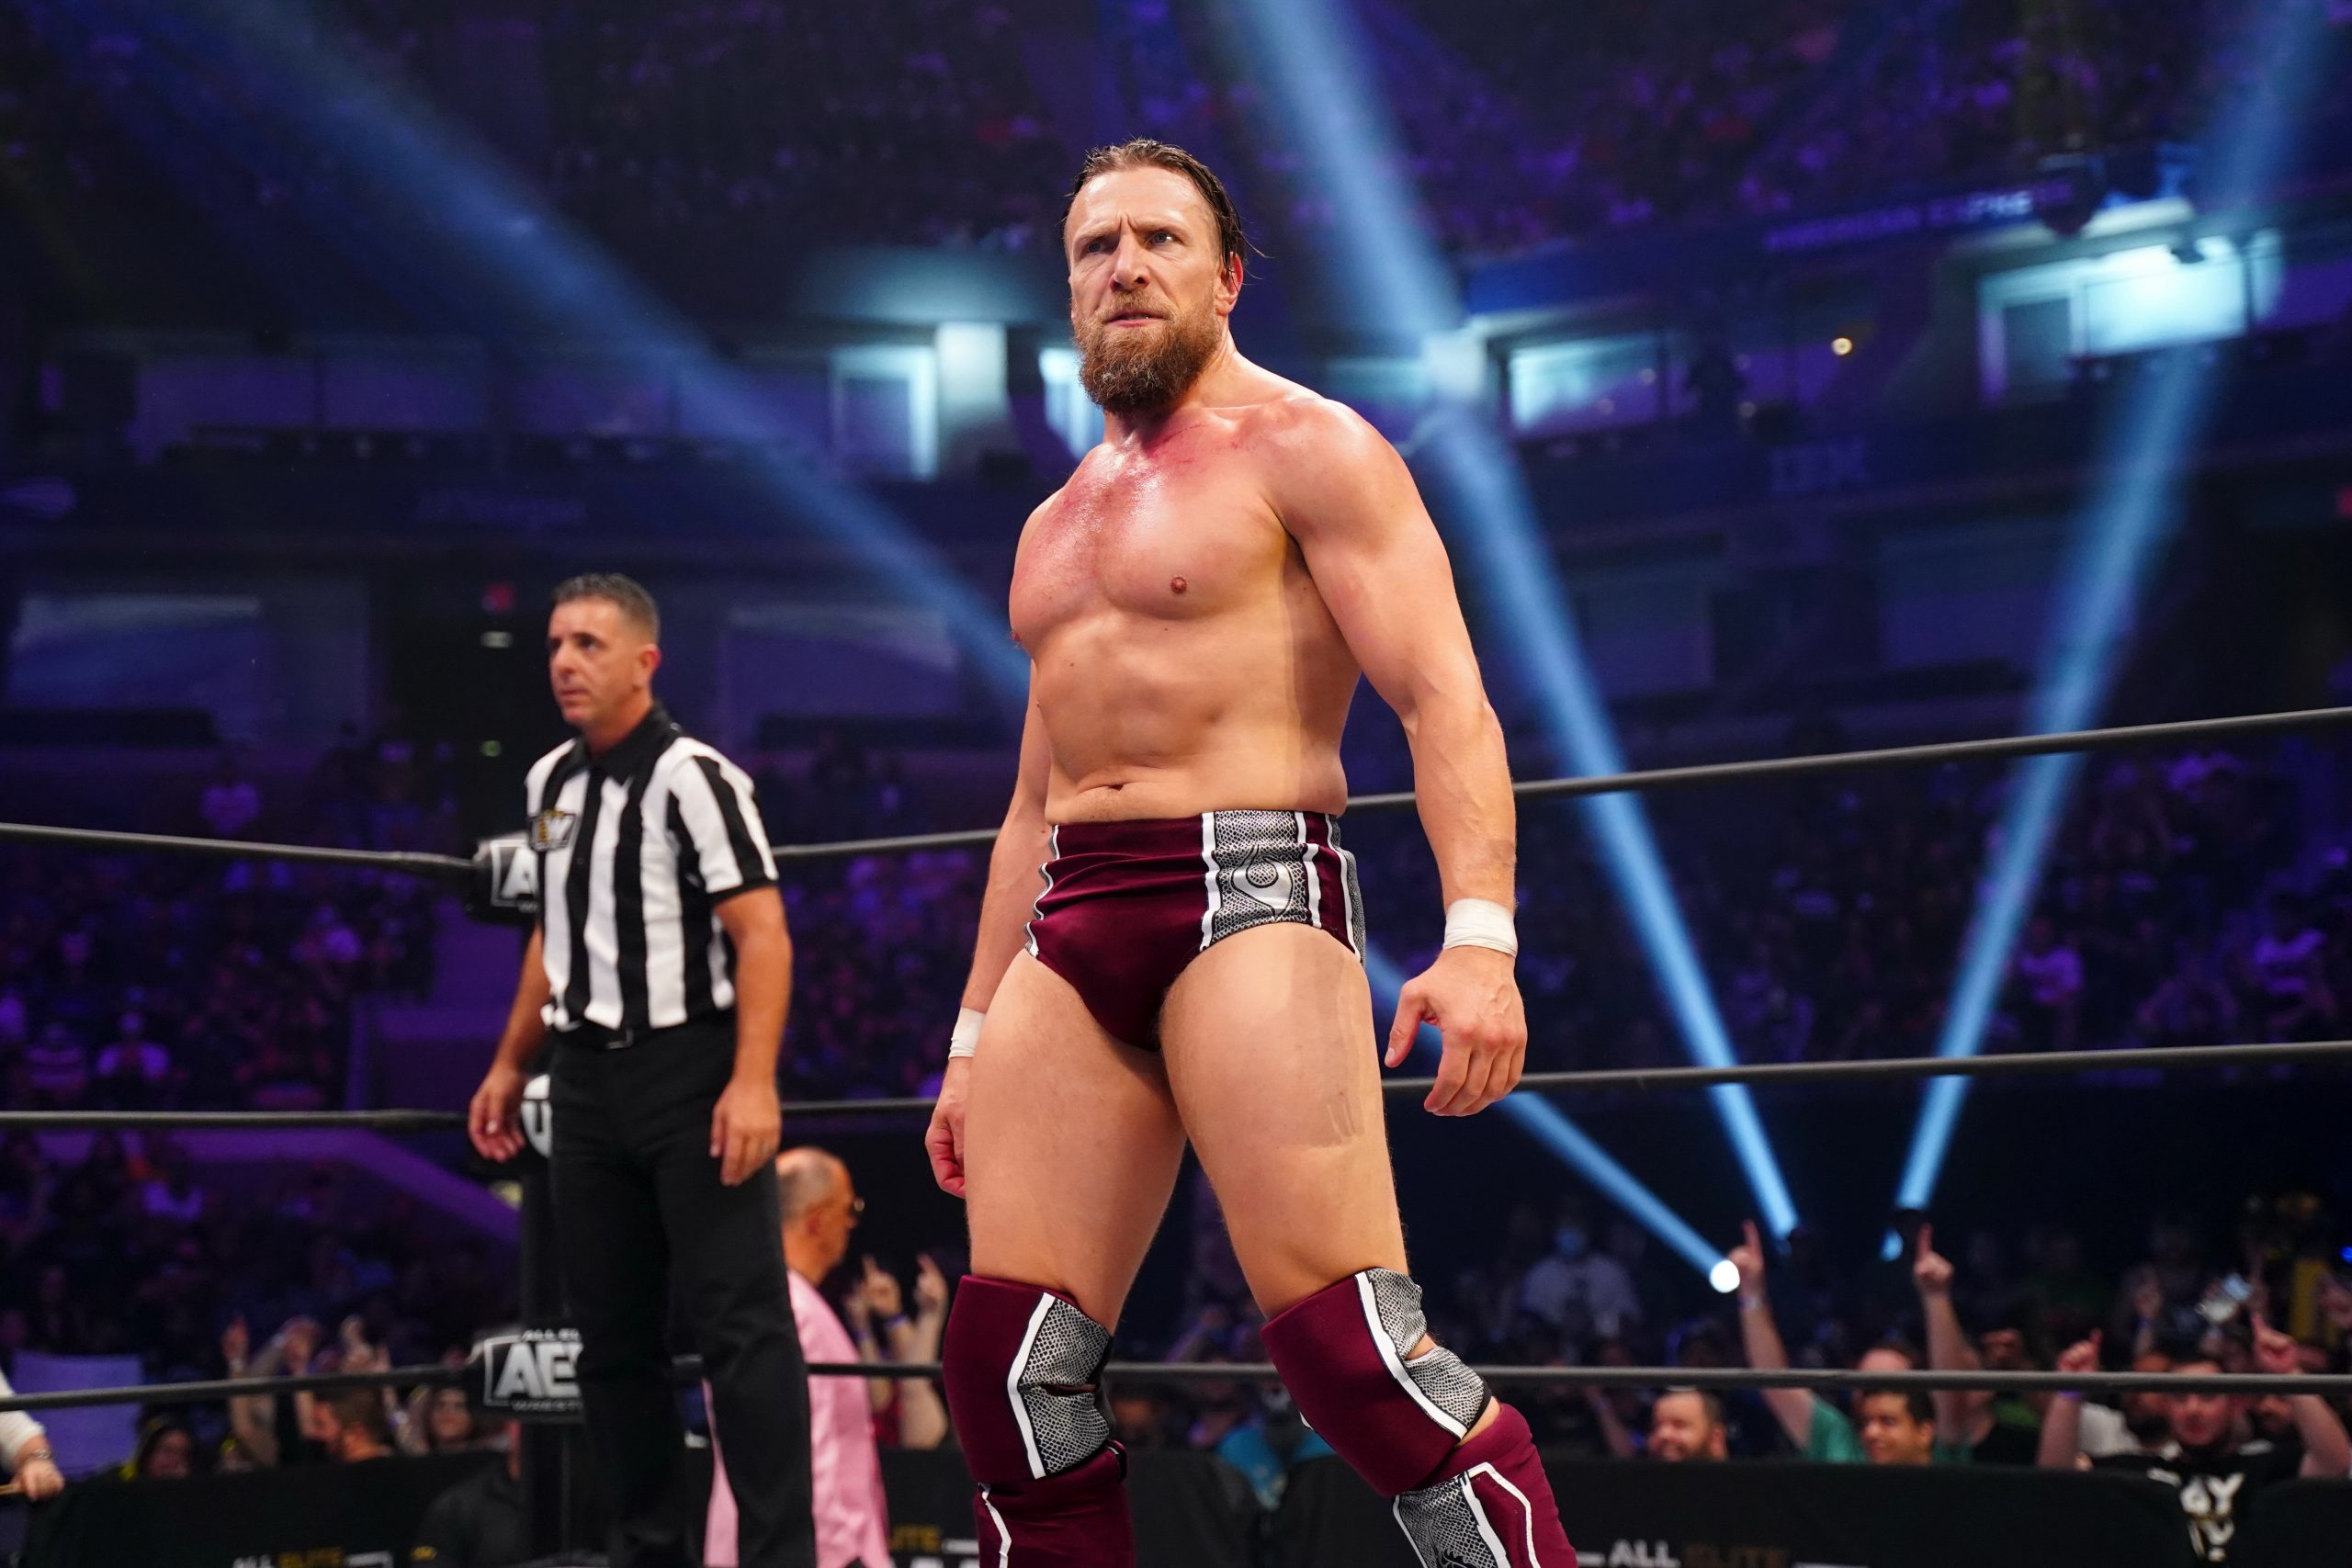 Bryan Danielson Explains Process Of Working With WWE Writers